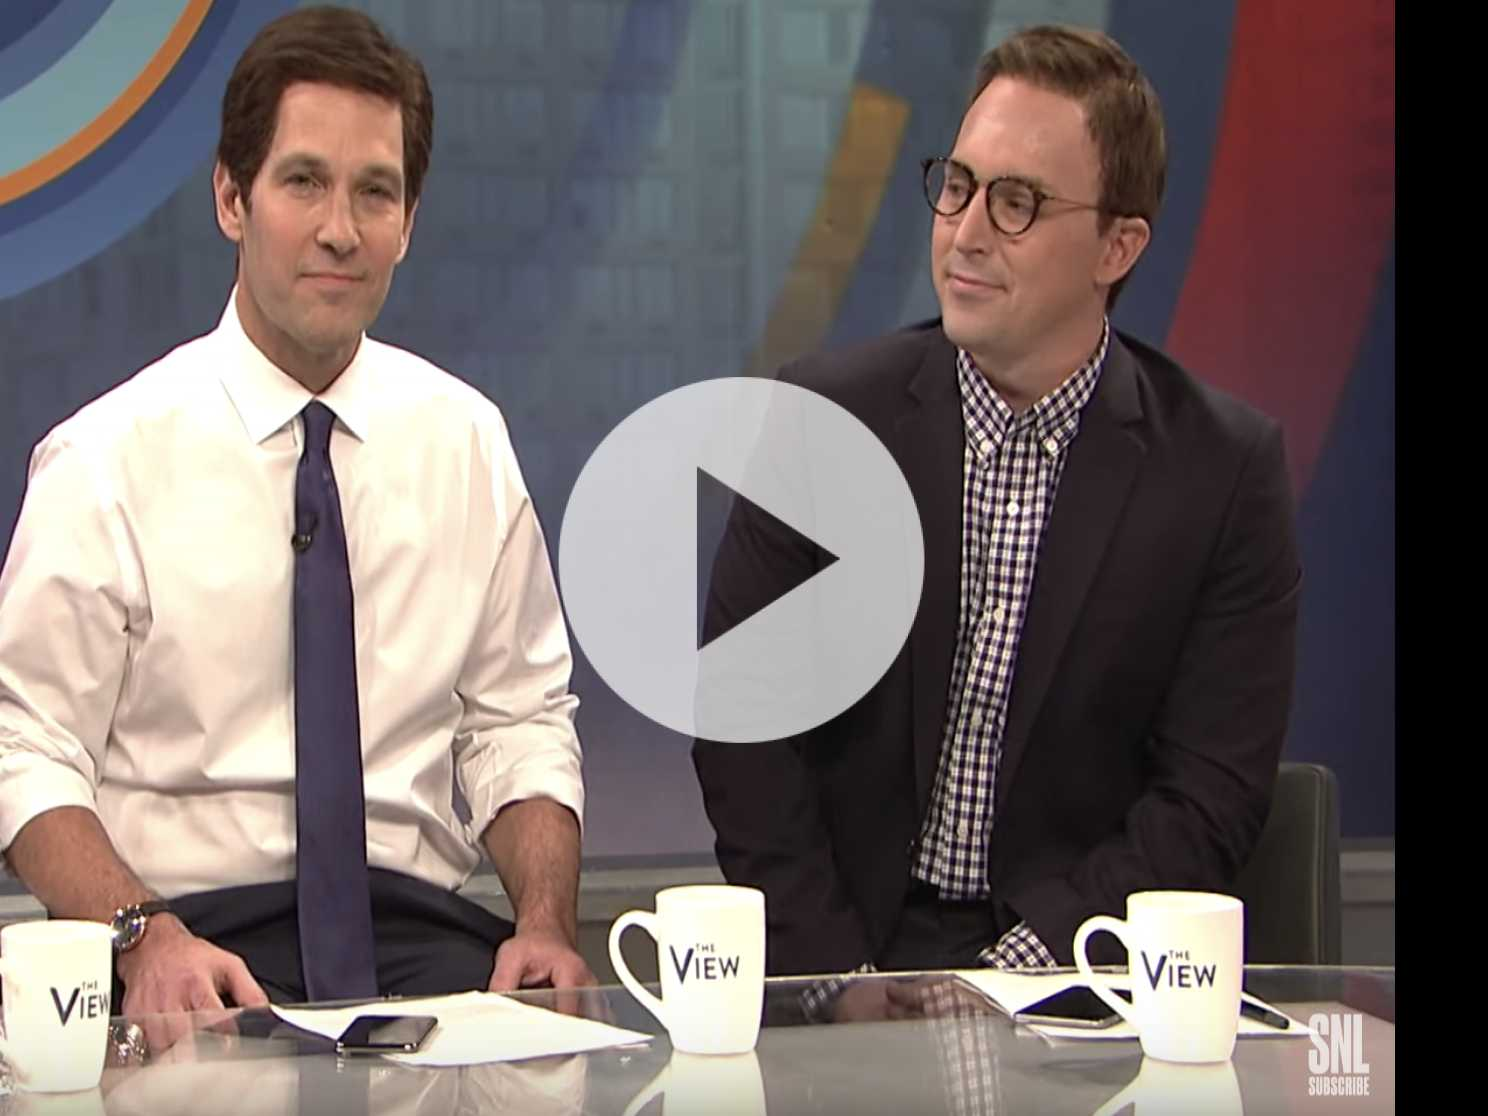 Watch: Paul Rudd Impersonates Buttigieg on 'SNL' as 'Boring Gay Man'